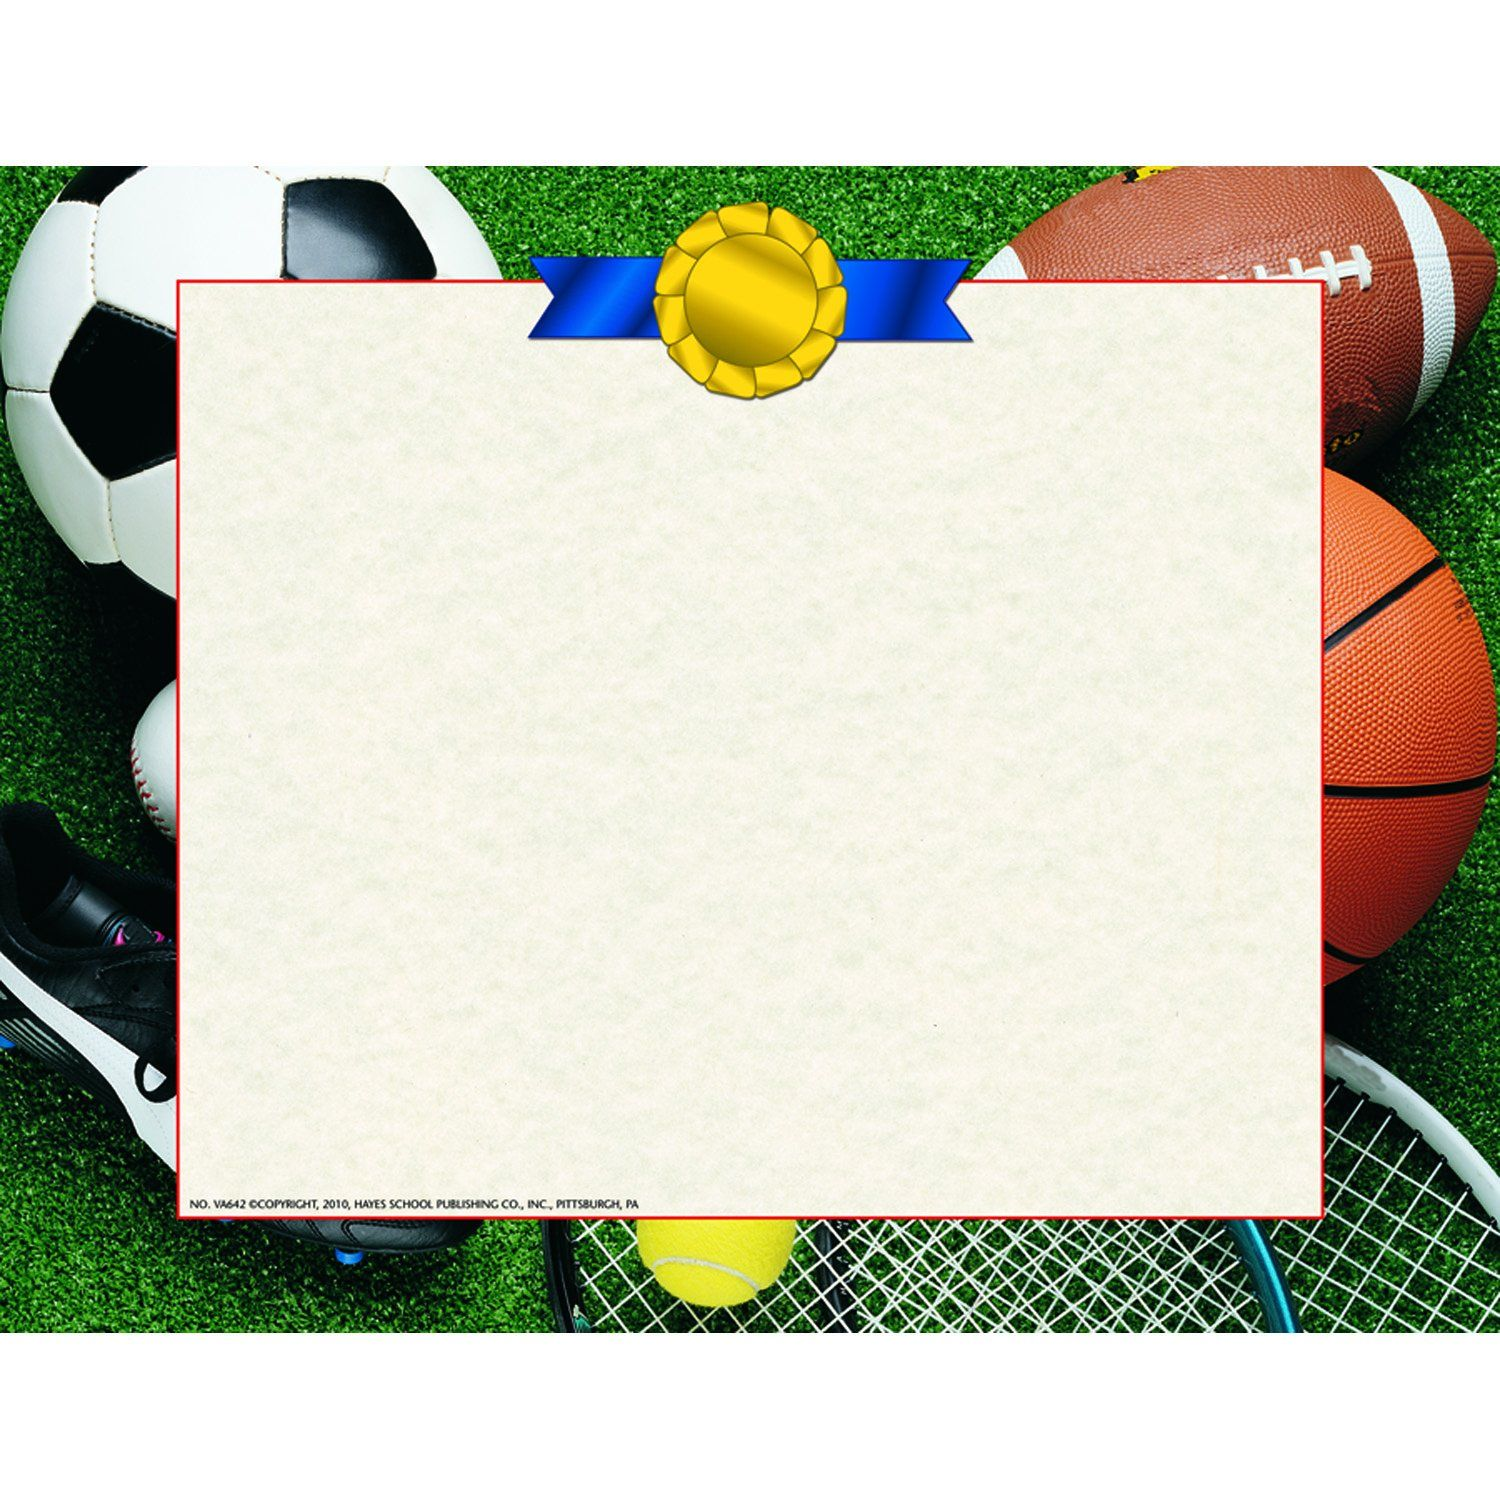 Athletic Certificate Border Computer Paper In 2021 Borders For Paper Certificate Border Computer Paper Basketball border for microsoft word